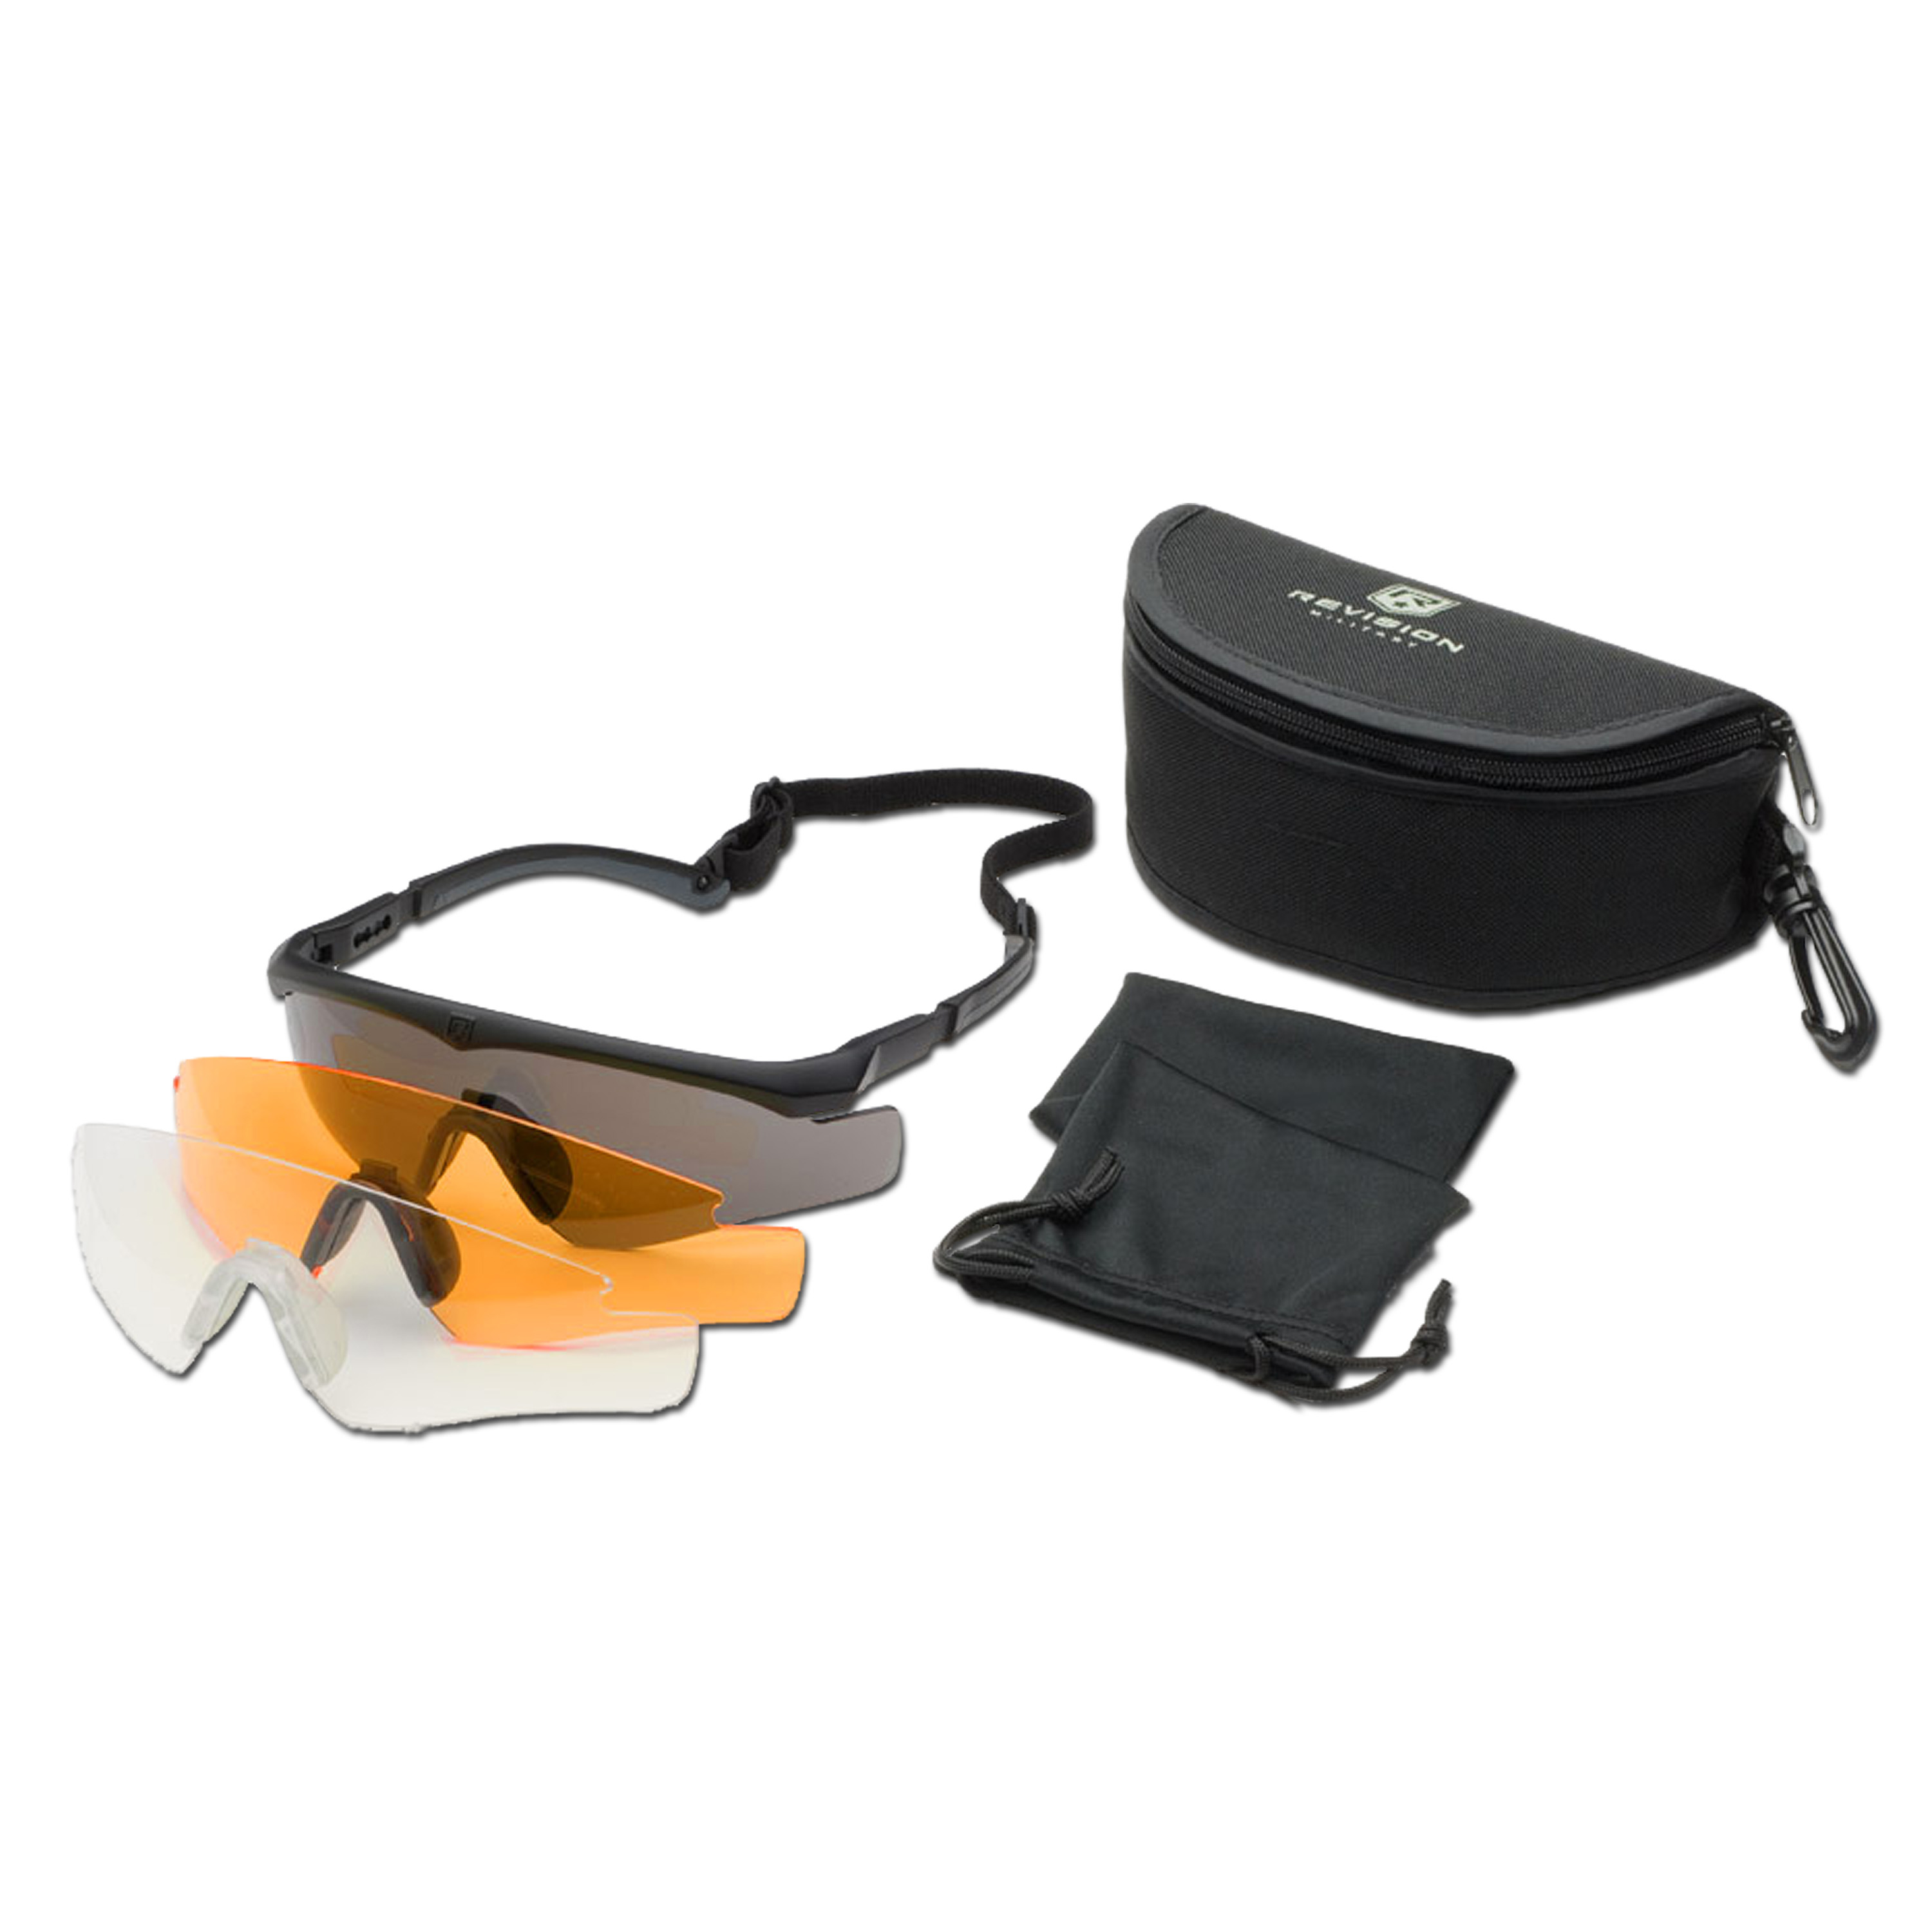 Brille Revision Sawfly MAX-Wrap Mission Kit large schwarz